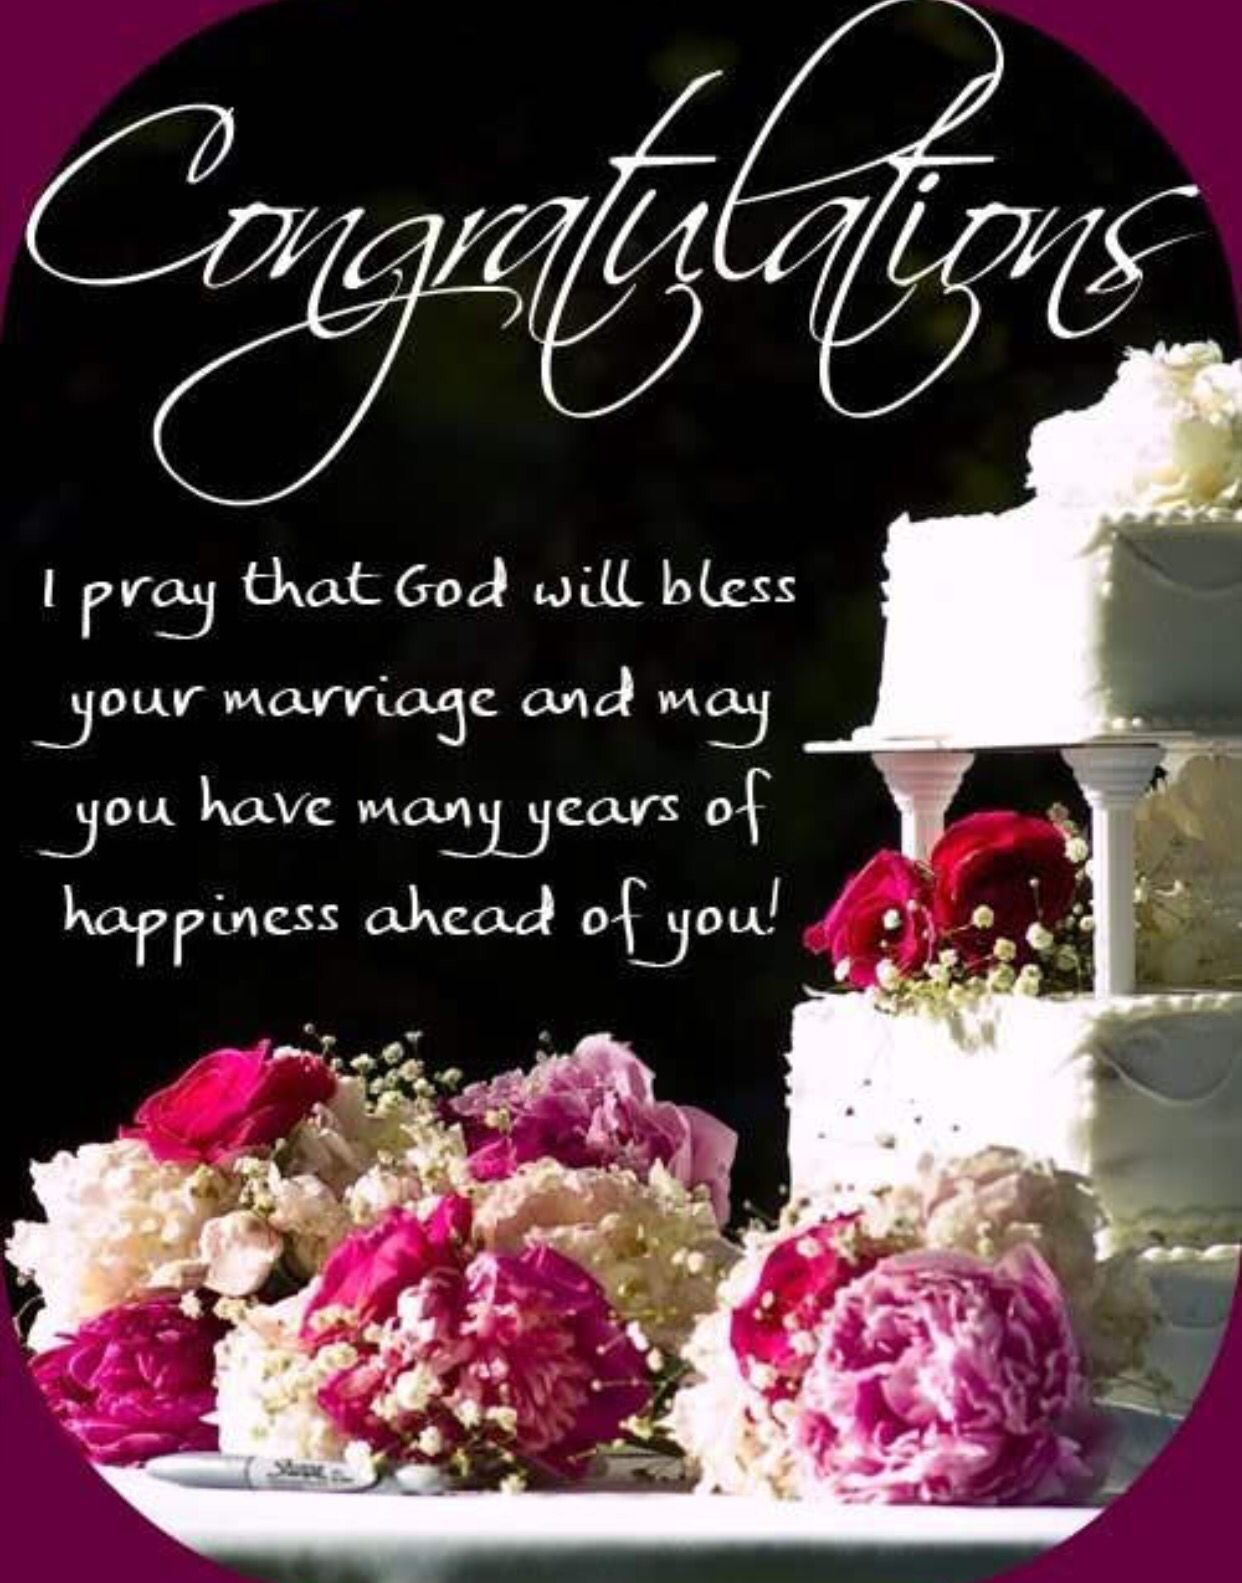 Congratulations Bride & Groom Happy marriage anniversary